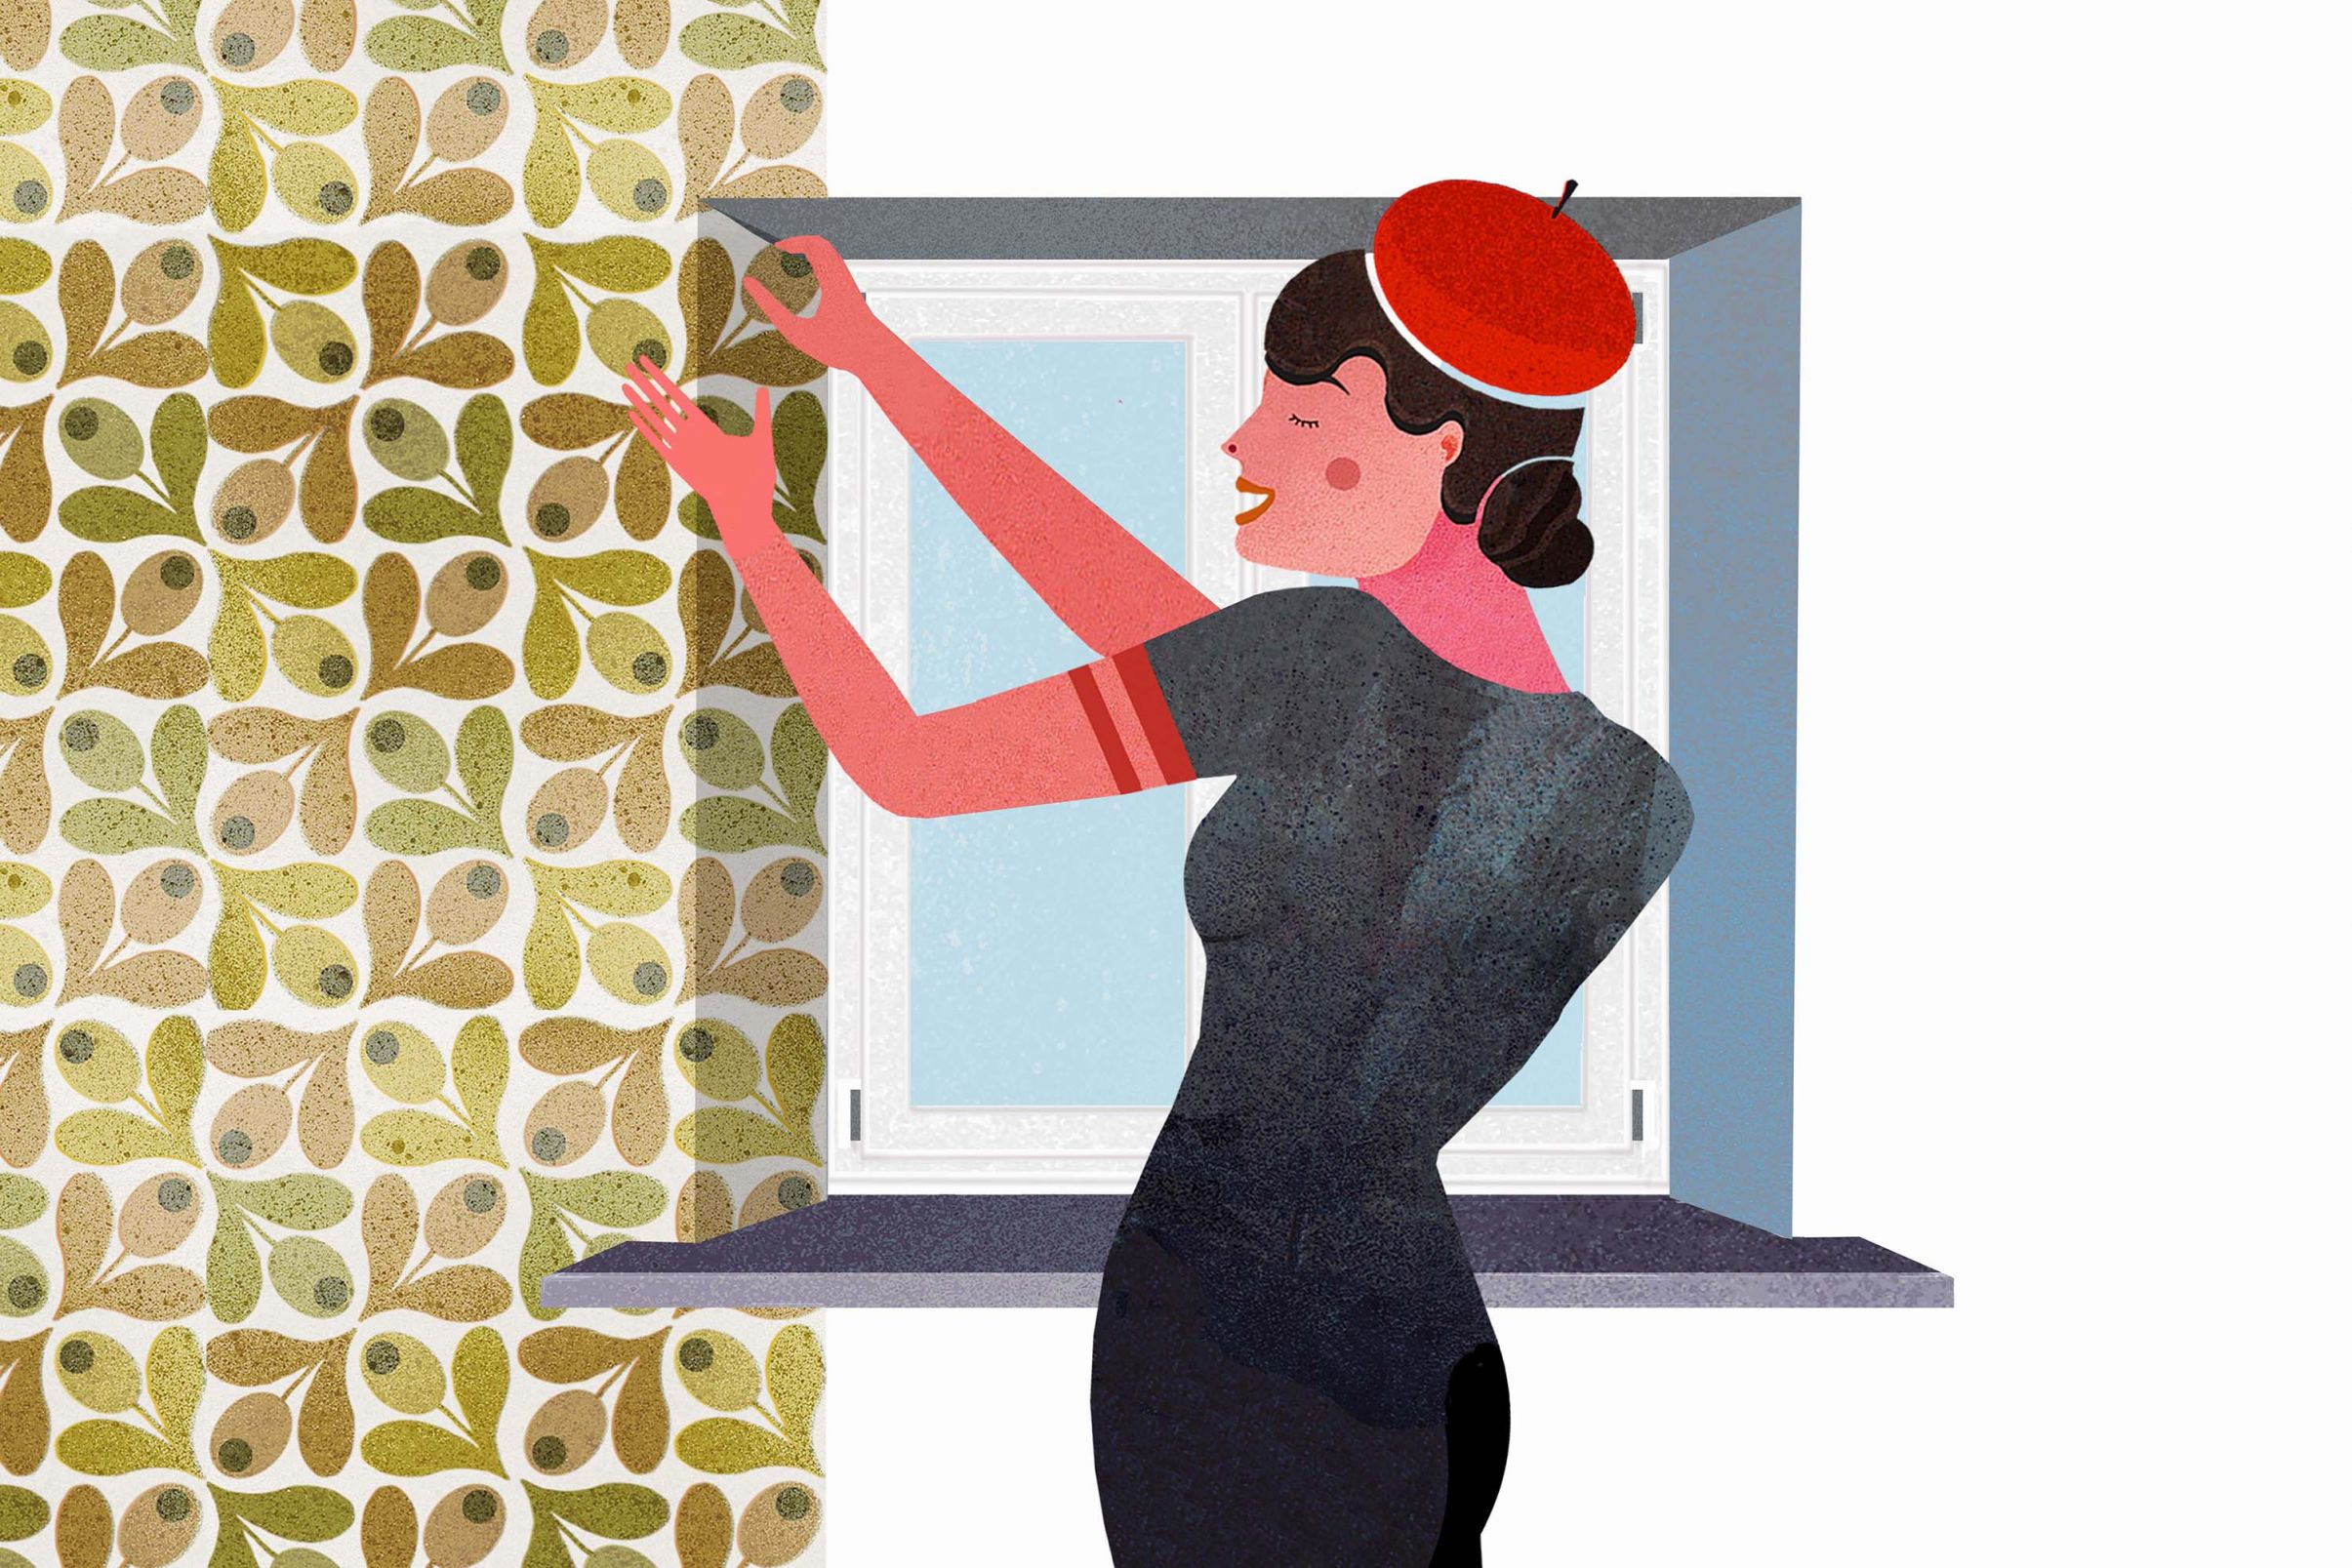 How-to-apply-wallpaper-around-windows-and-doors-Apply-wallpaper-with-an-overlap-around-the-windows-place-cuts-in-corners-and-fold-inwards